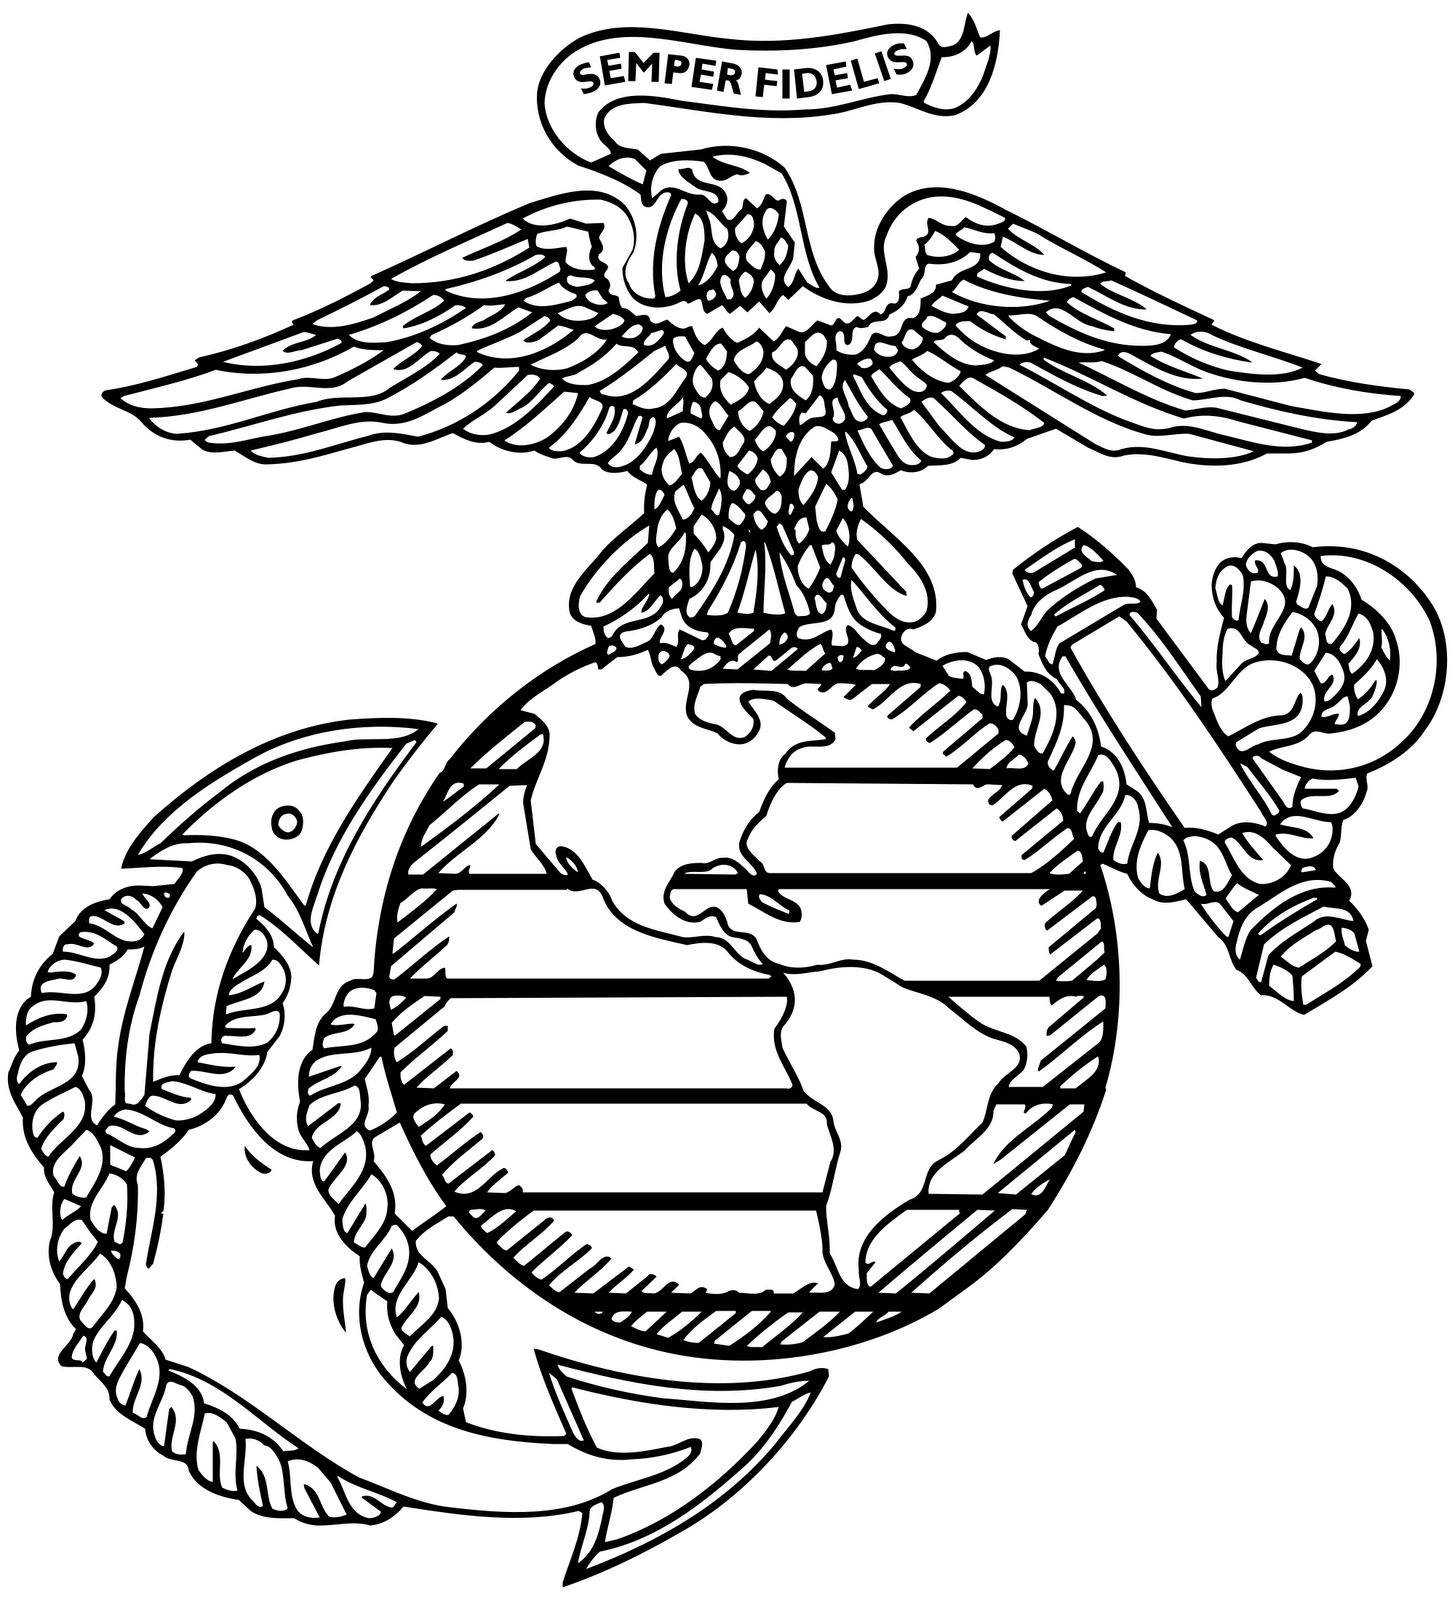 1455x1600 Usmc Logo Vector Art, Free Stock Charts, Free Wallpapers For